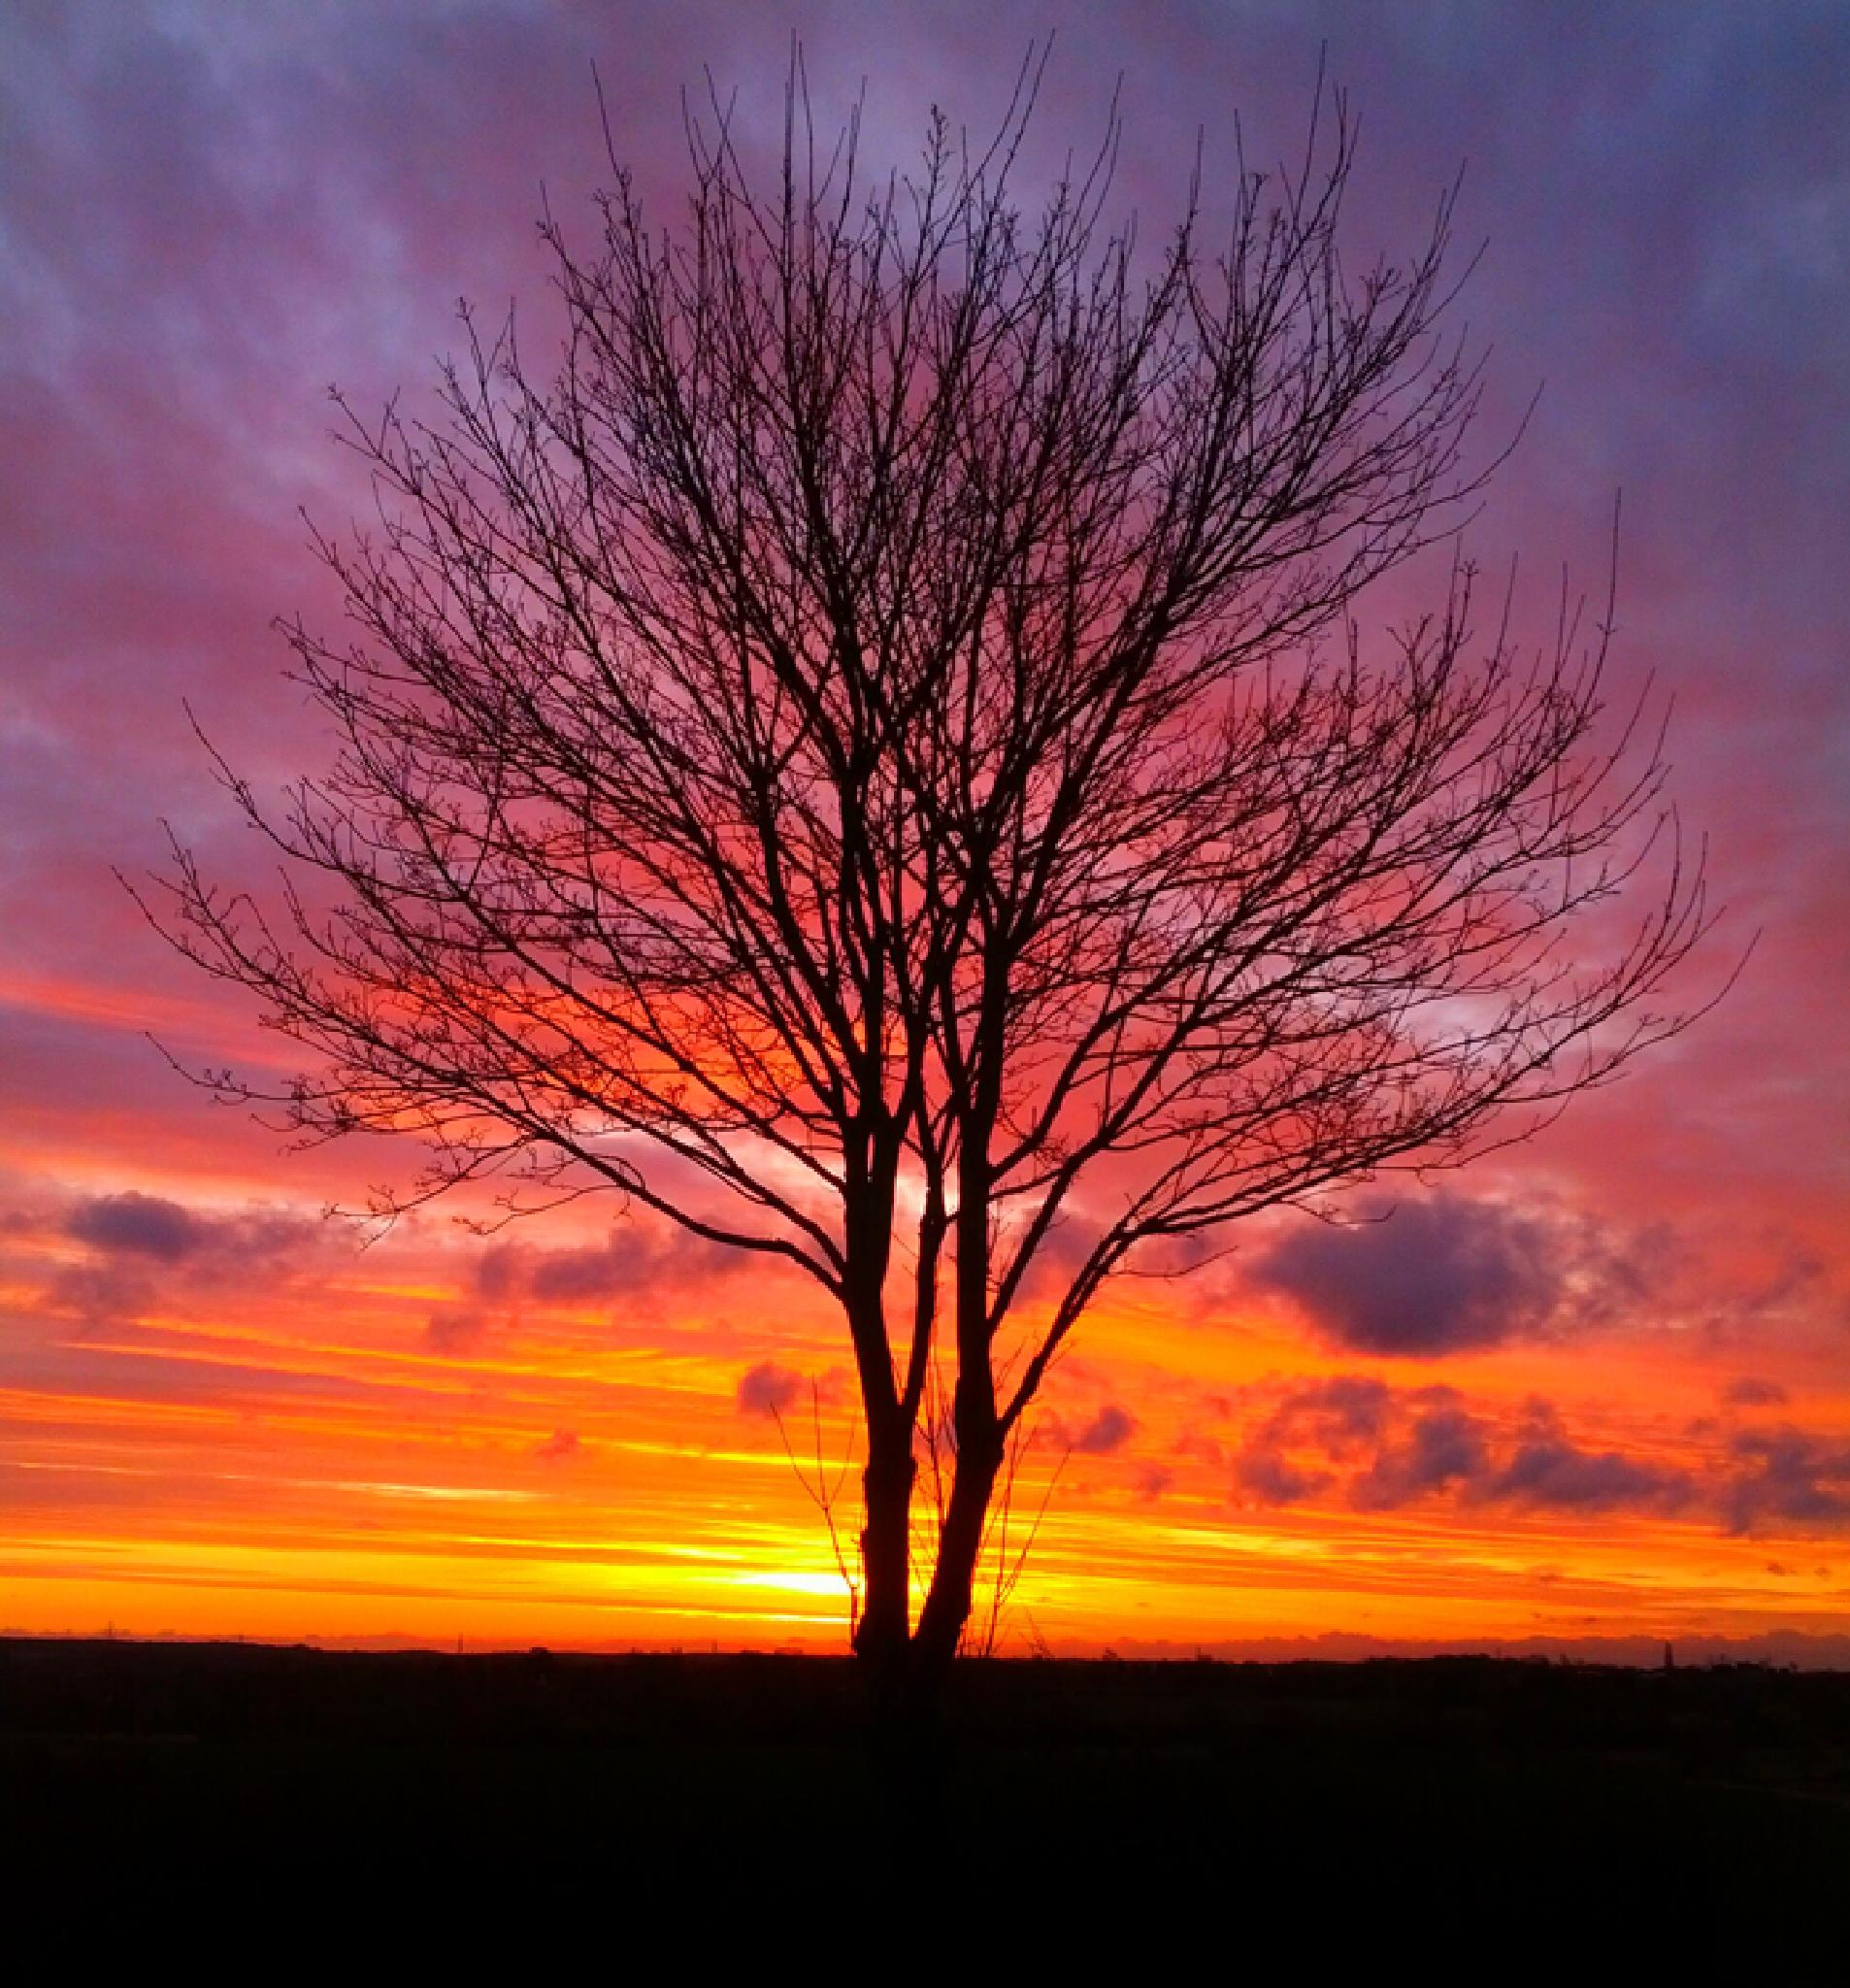 tree in the sunrise by ashley reed